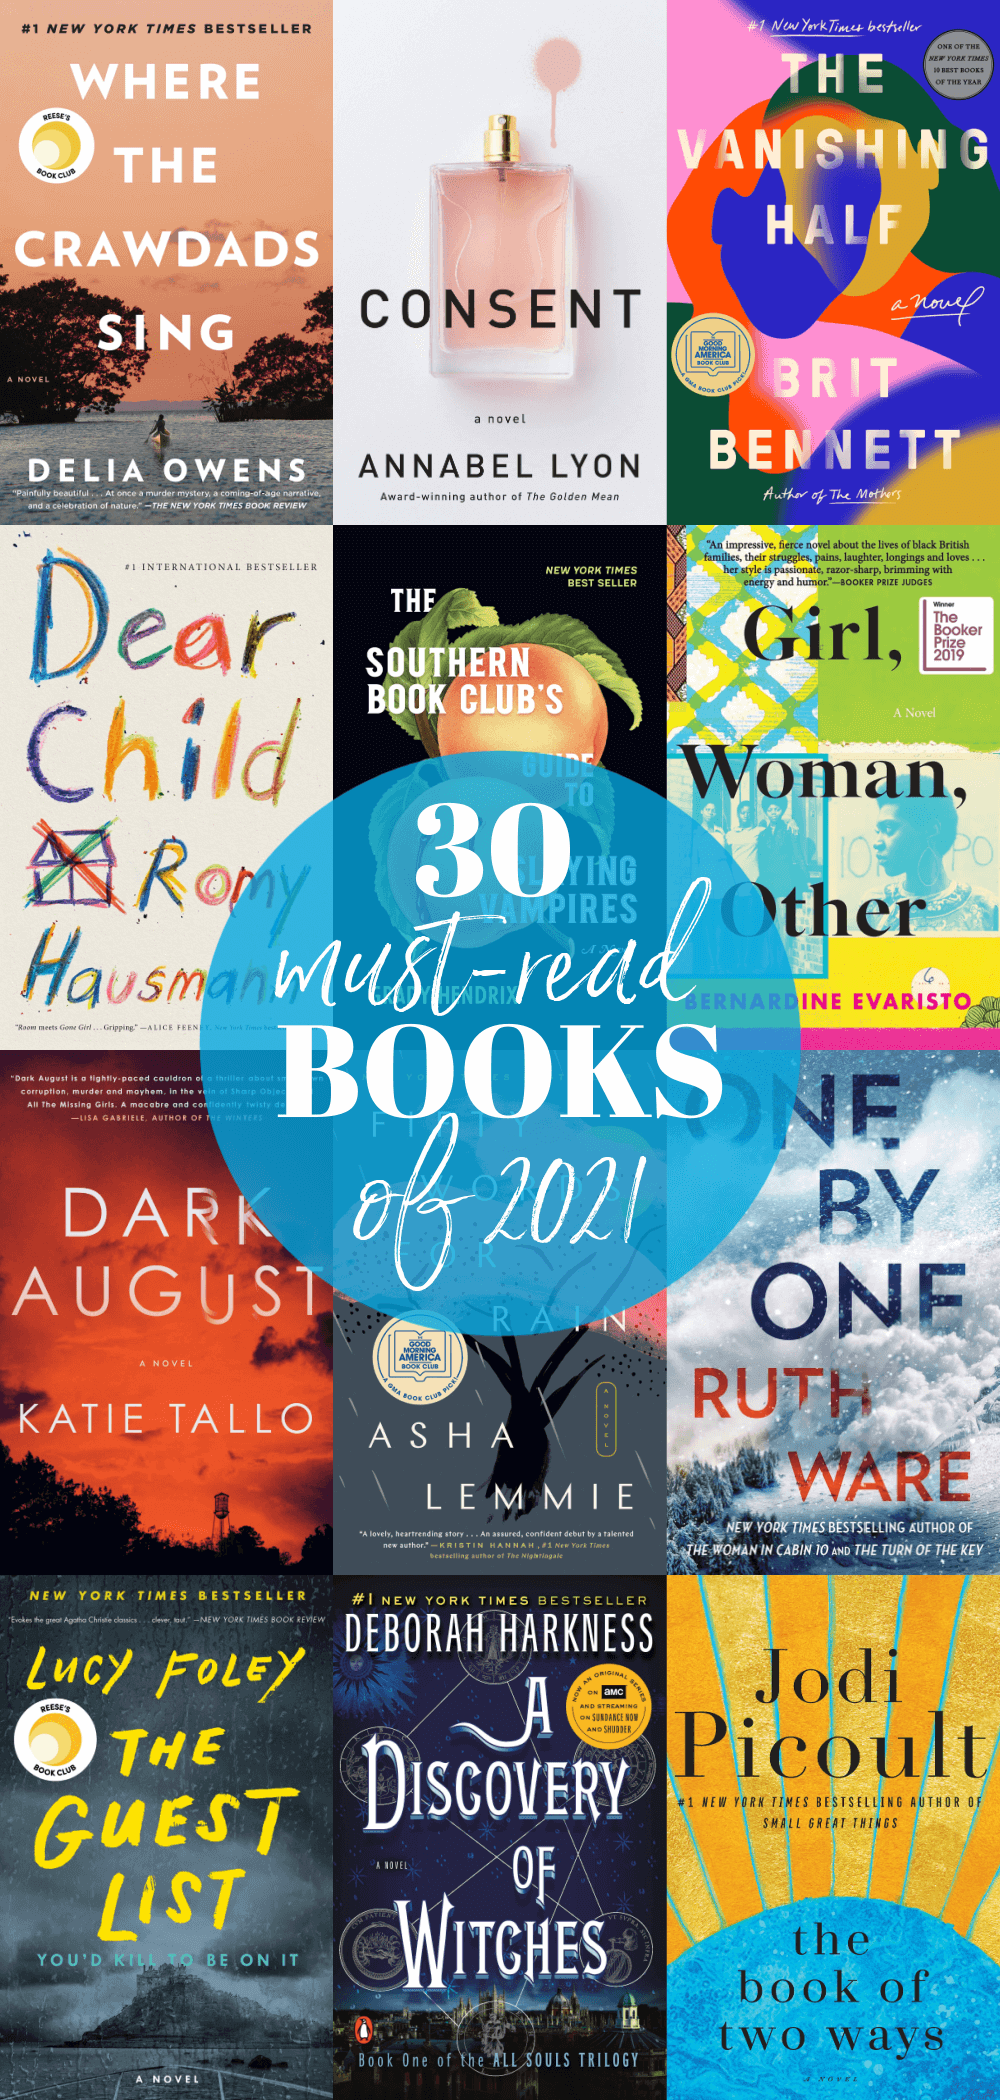 30 Books You Should Read in 2021 - Looking for some awesome books to enjoy this year? Check out our list of 30 books you should read in 2021 to find your next book!